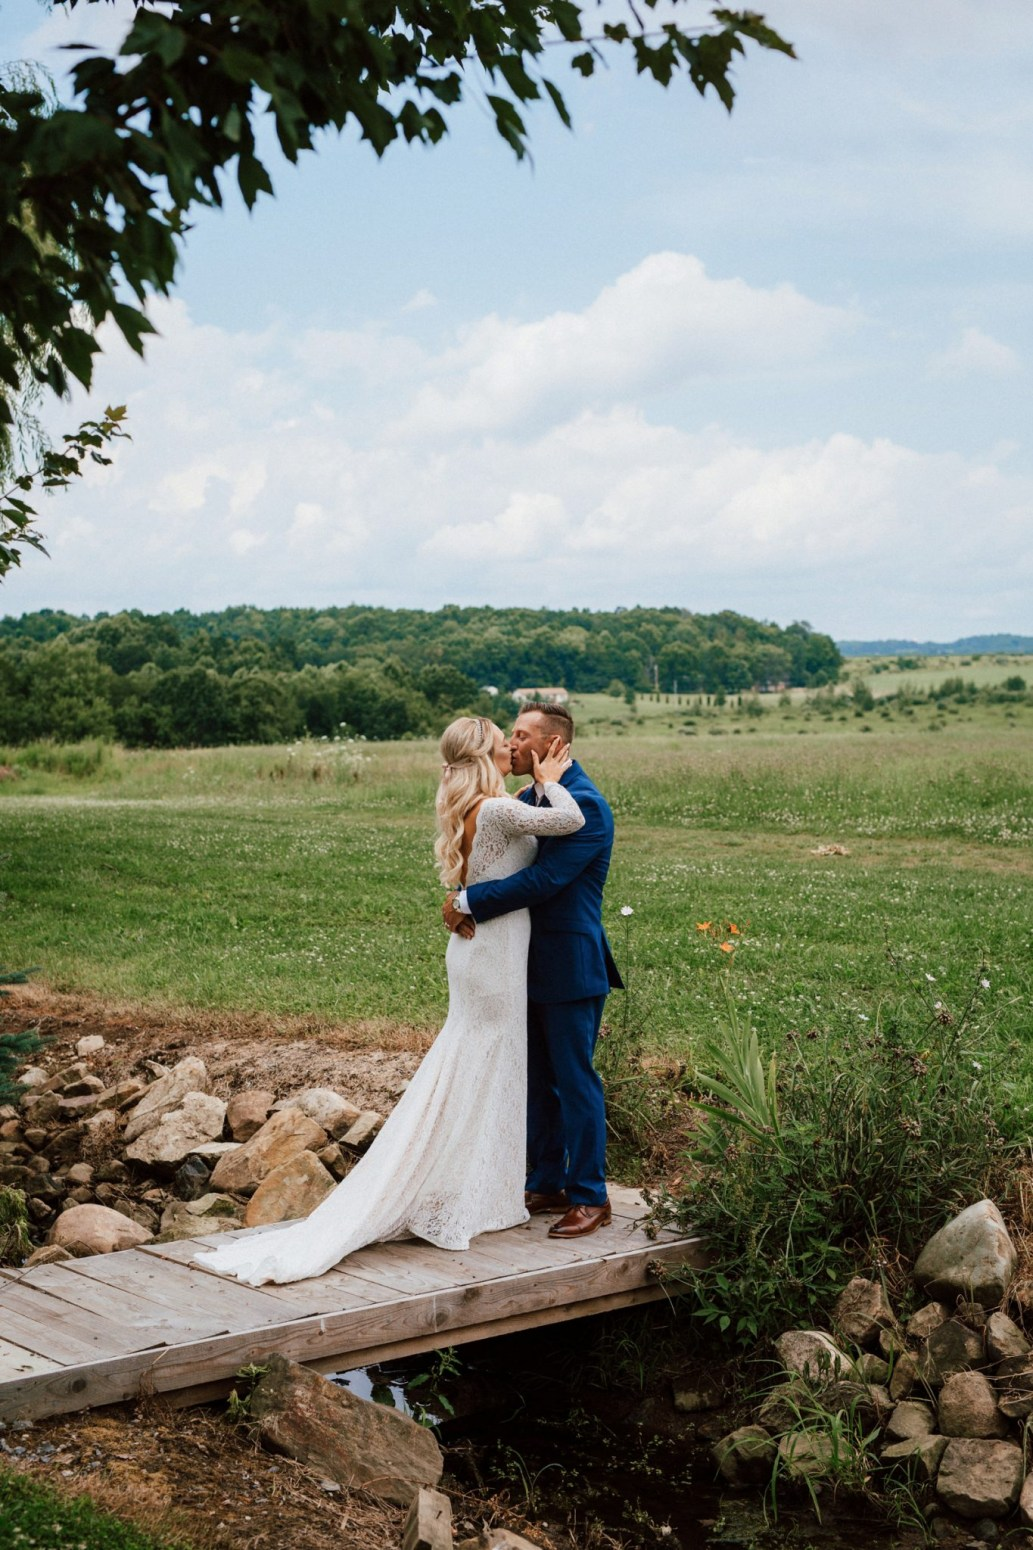 Rustic Acres Farm Wedding Pennsylvania